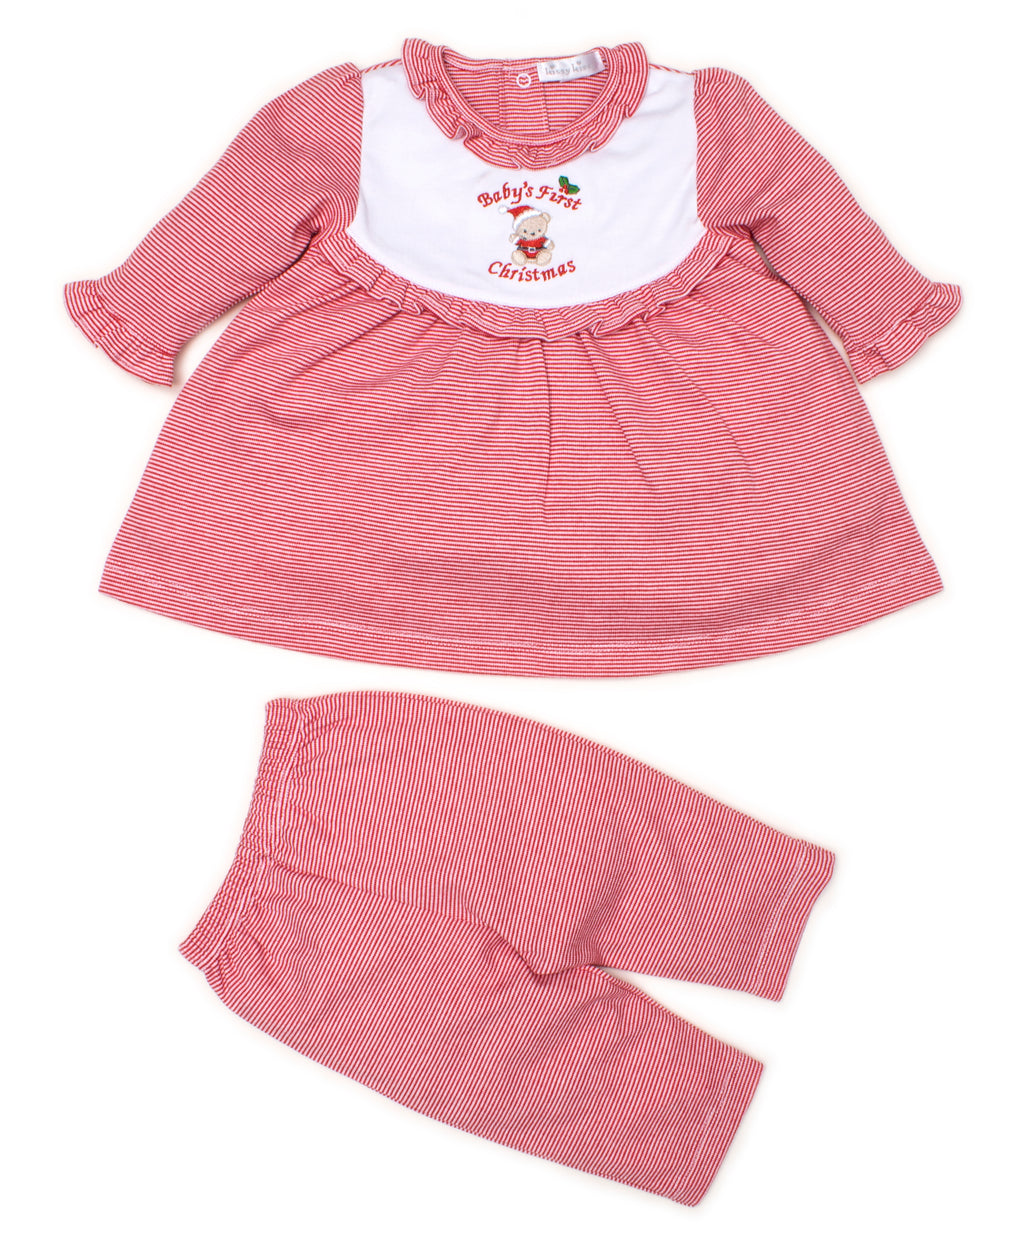 Baby's First Christmas Dress Set